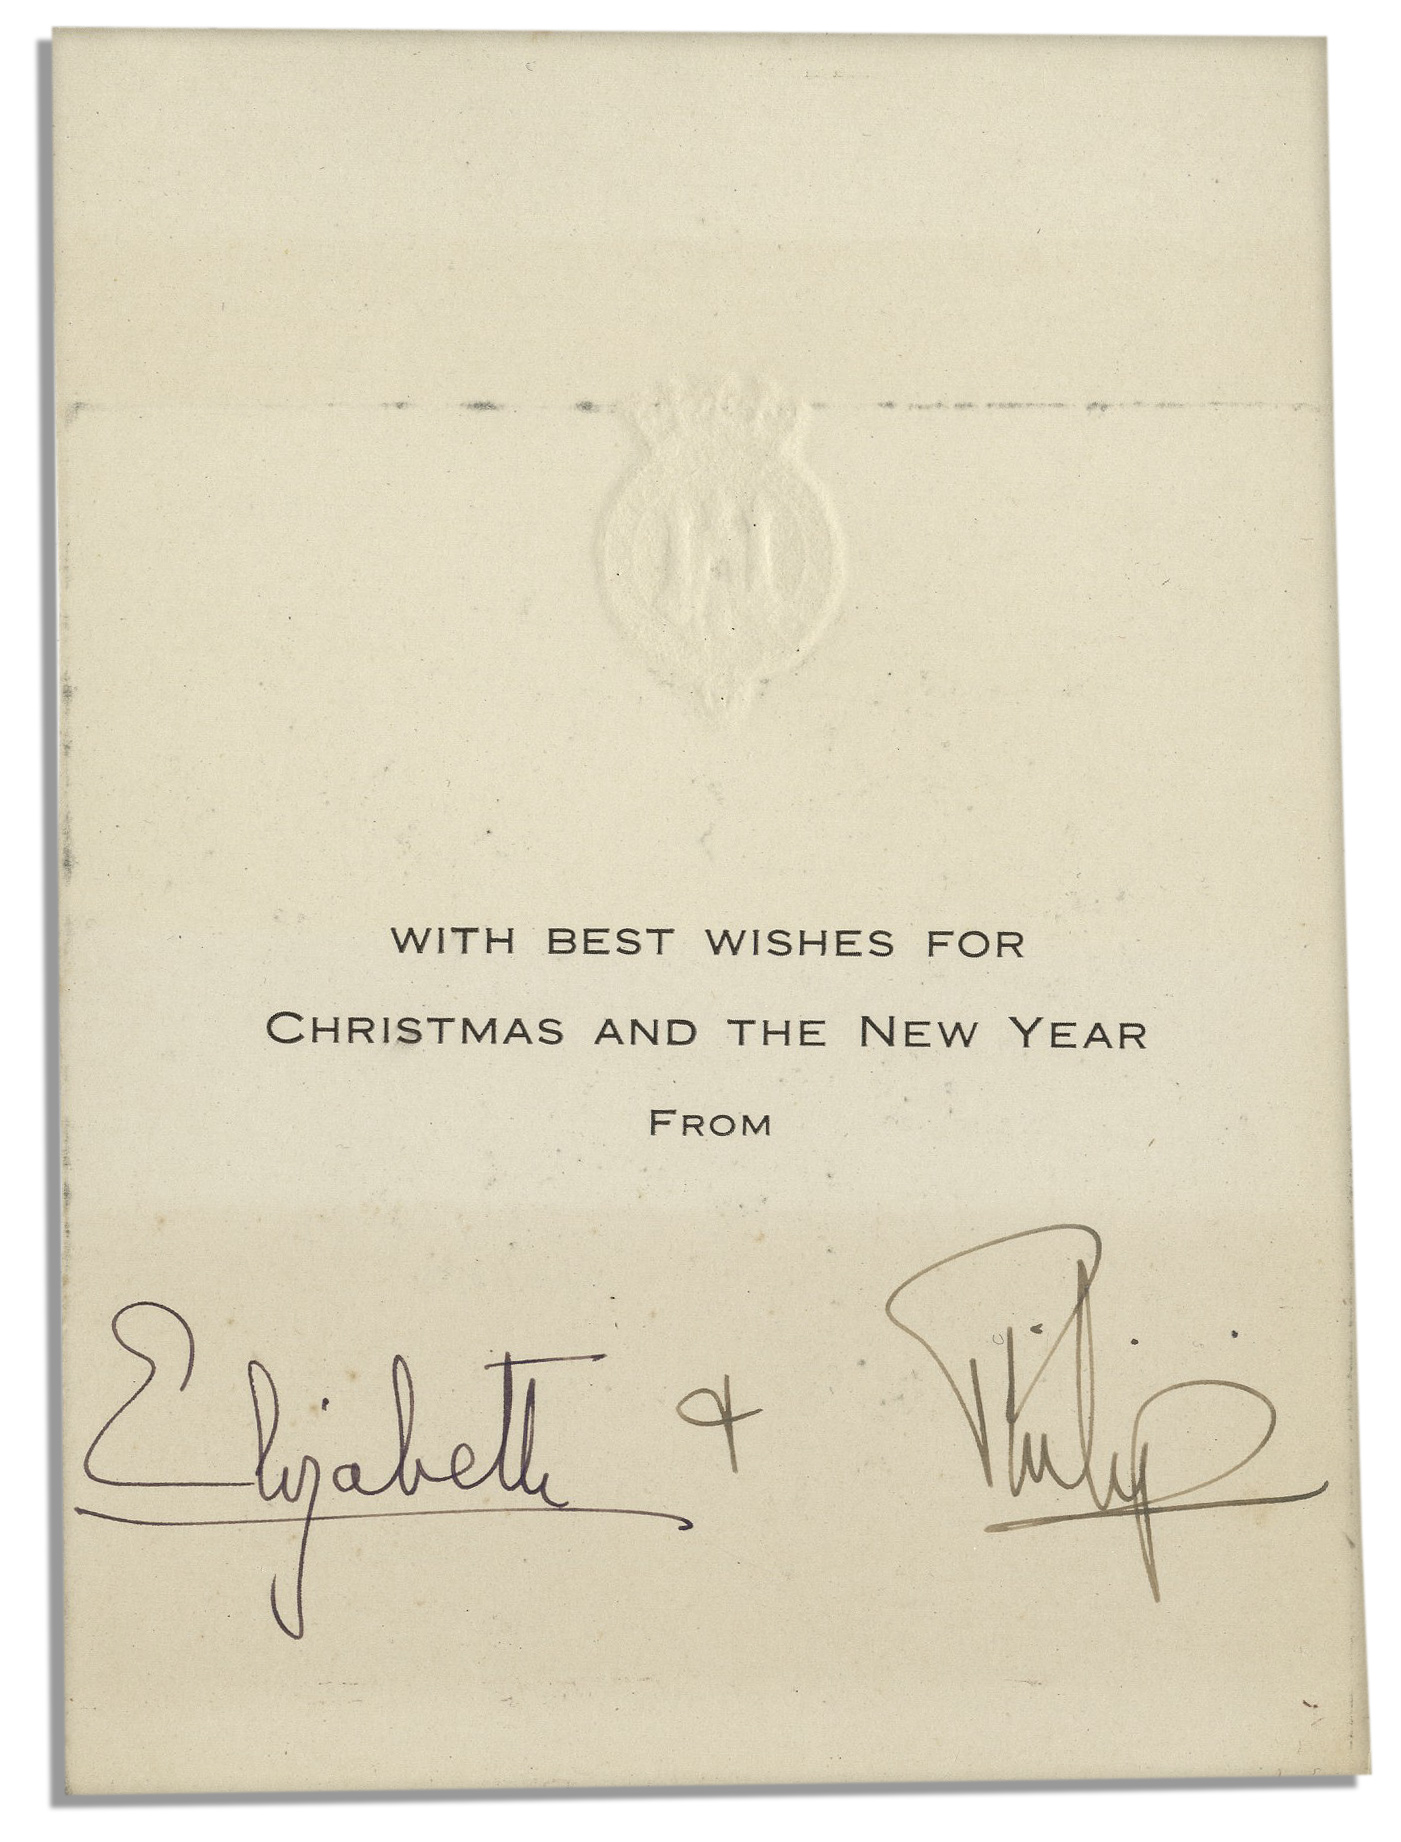 queen elizabeth ii prince philip signed christmas card early signature by elizabeth as - Christmas Card Signatures